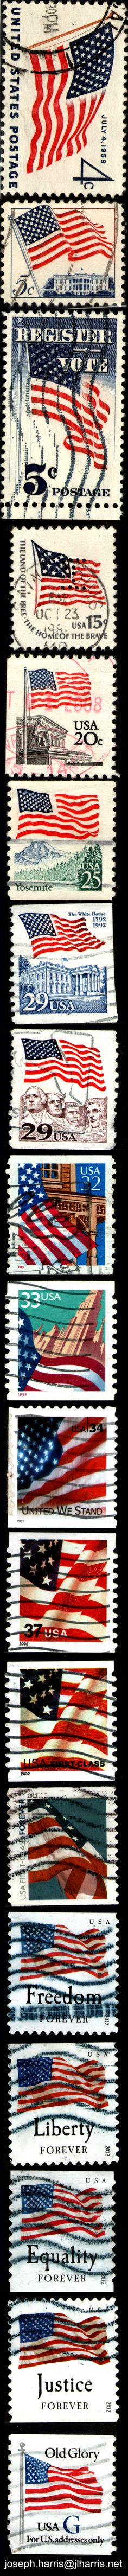 I've noticed that Pinterest lends itself to the long, vertically formatted images. So here's US Flag stamps from about 1960 until now.